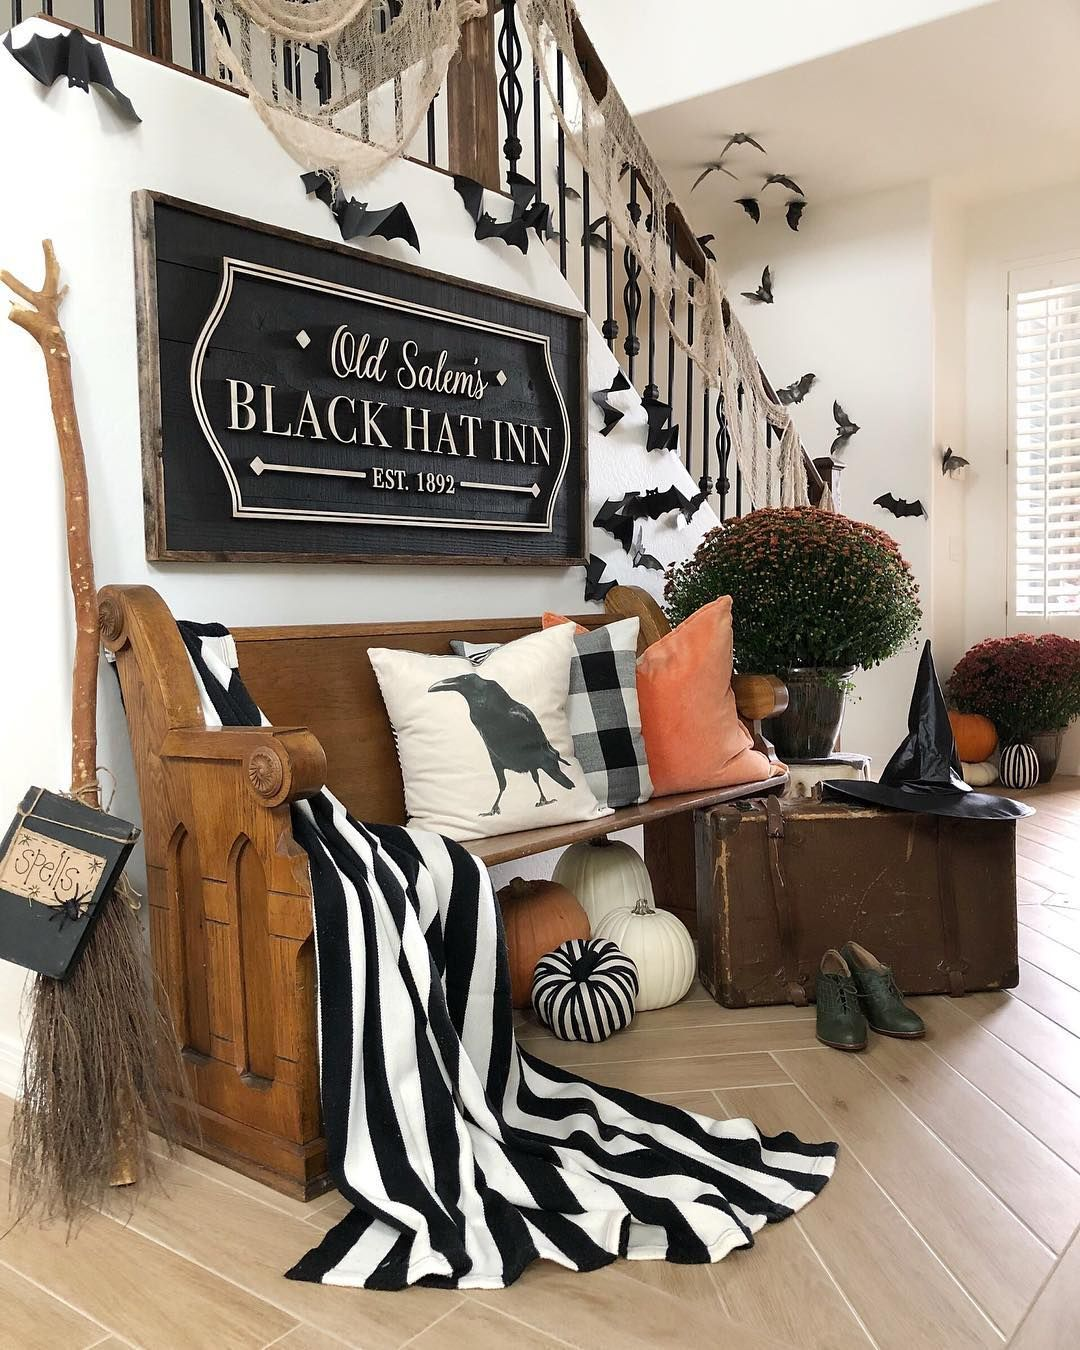 1570603340 814 cool black and white decor ideas for halloween - Cool Black And White Decor Ideas for Halloween